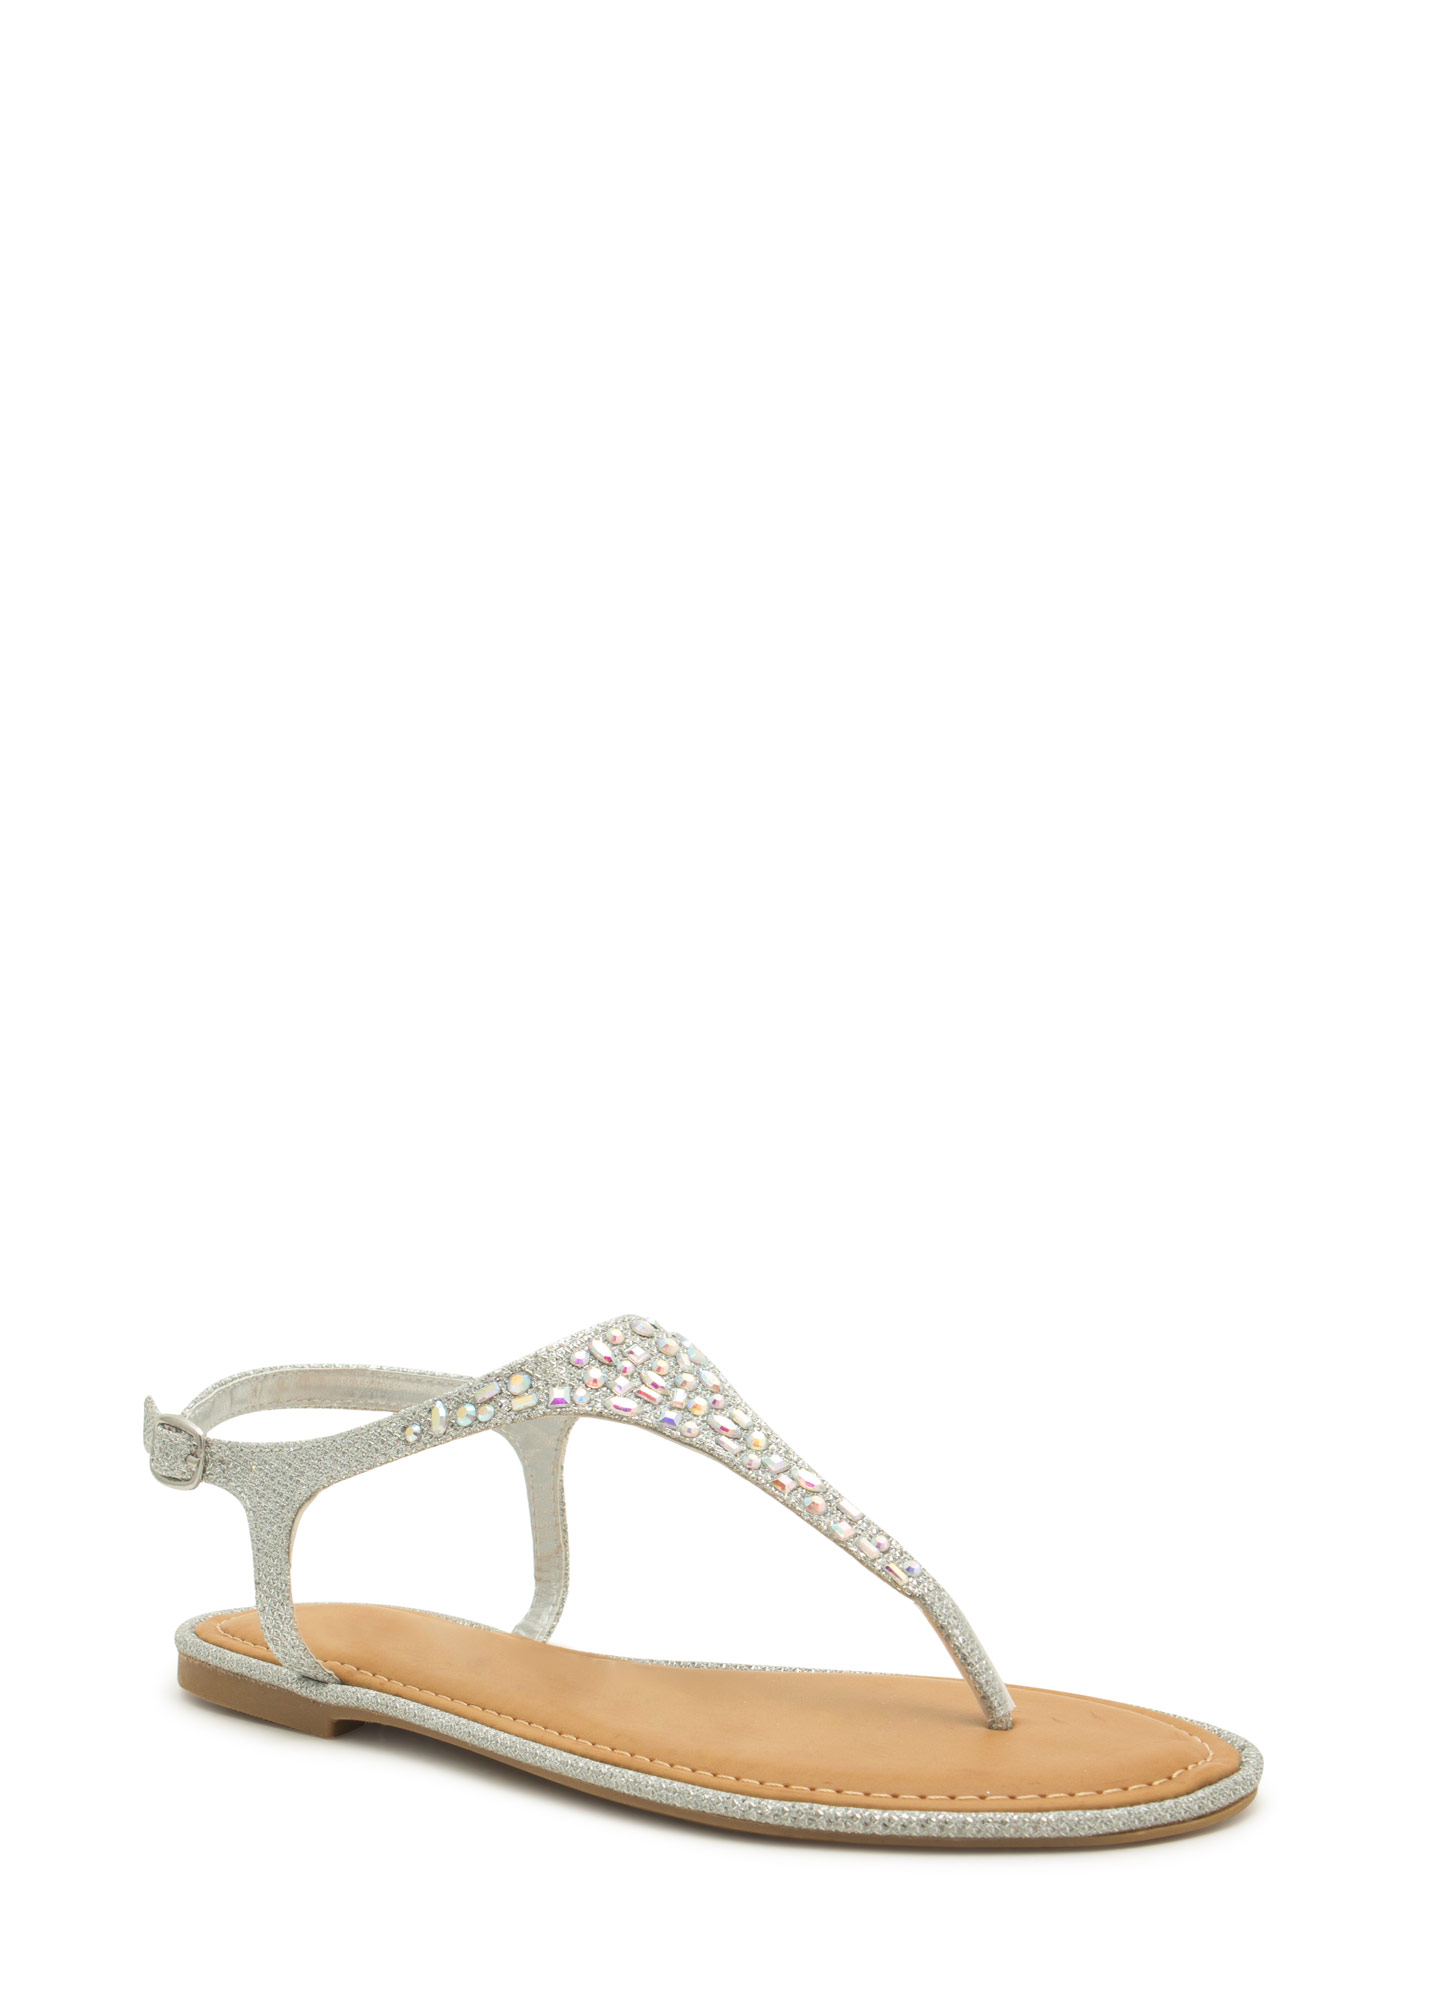 Embellished Tapered T-Strap Sandals SILVER